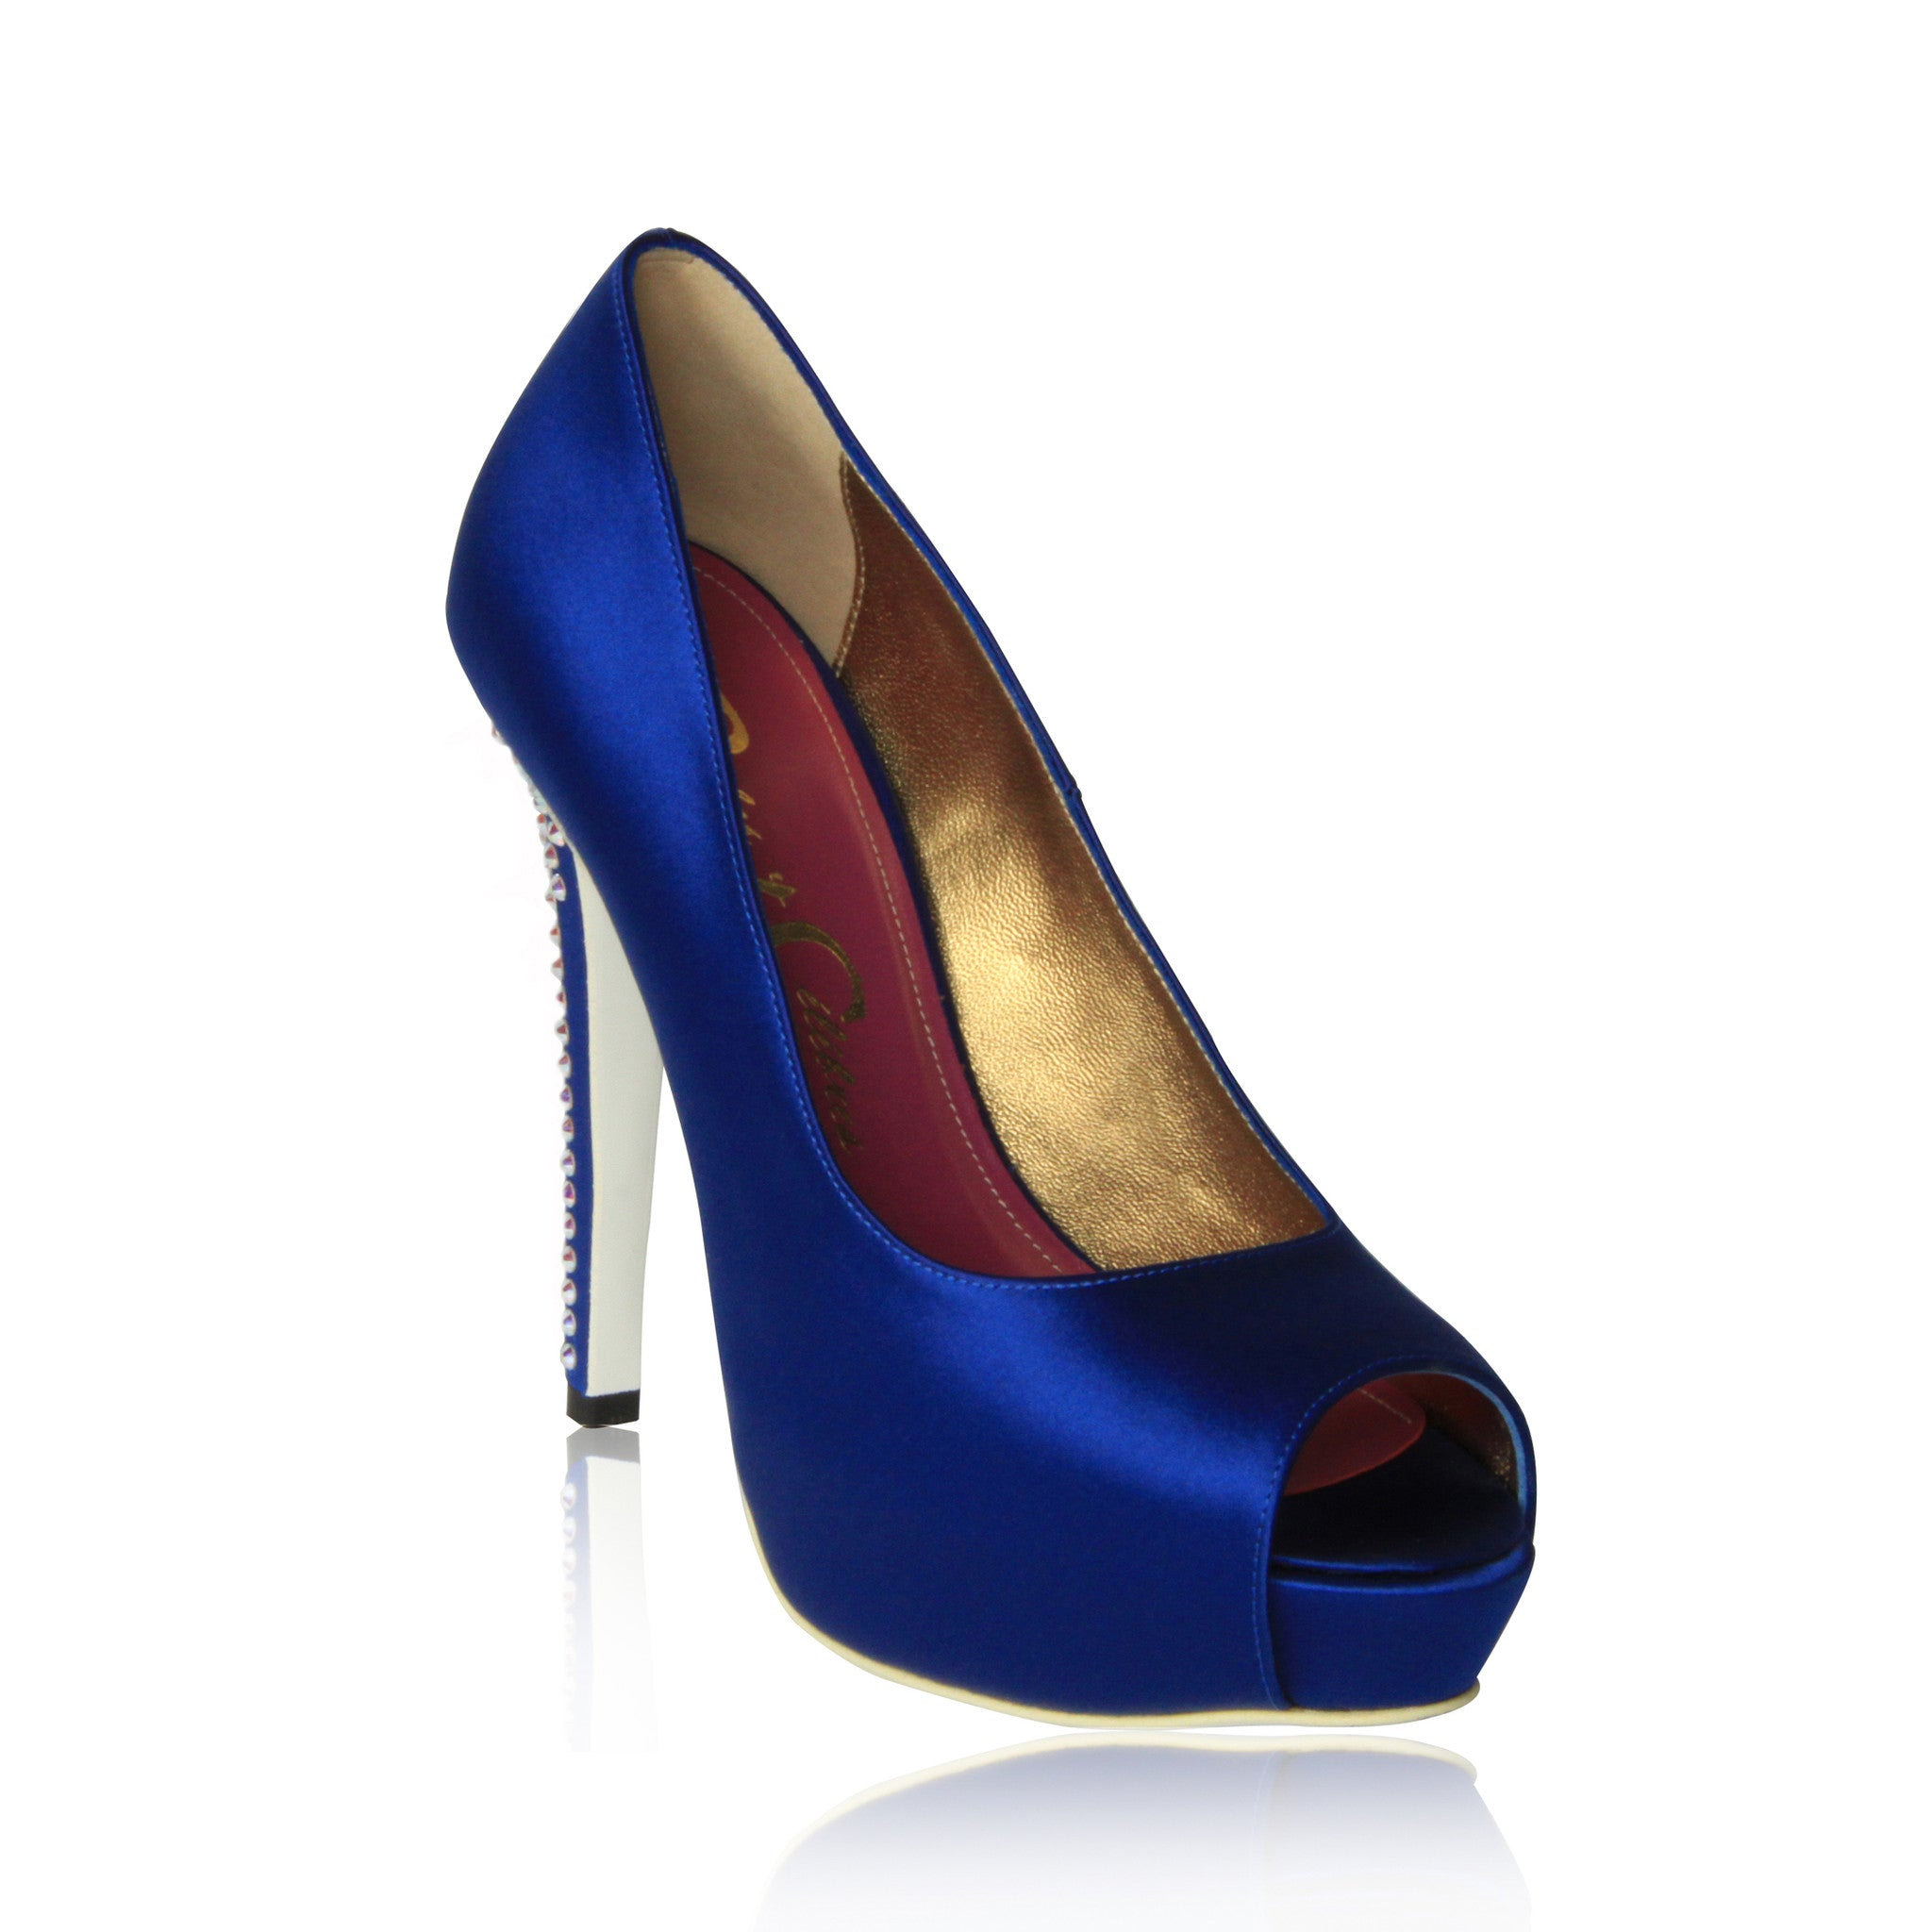 Blue Krista-Lawren Satin Platform Pumps